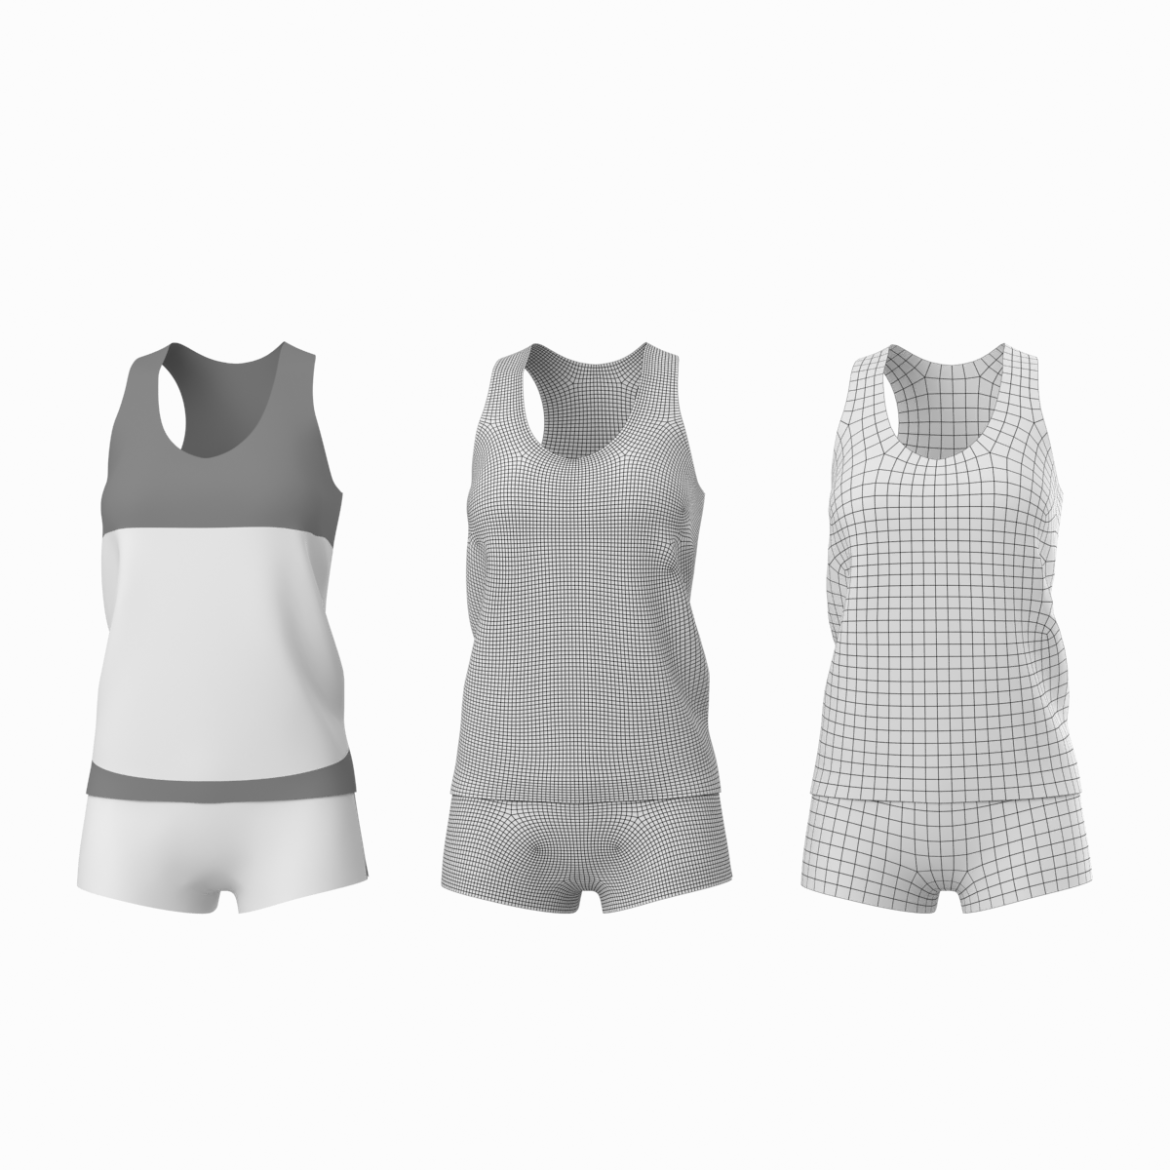 woman sportswear 03 base mesh design kit 3d model 3ds max fbx blend c4d dae ma mb  obj ztl 321867